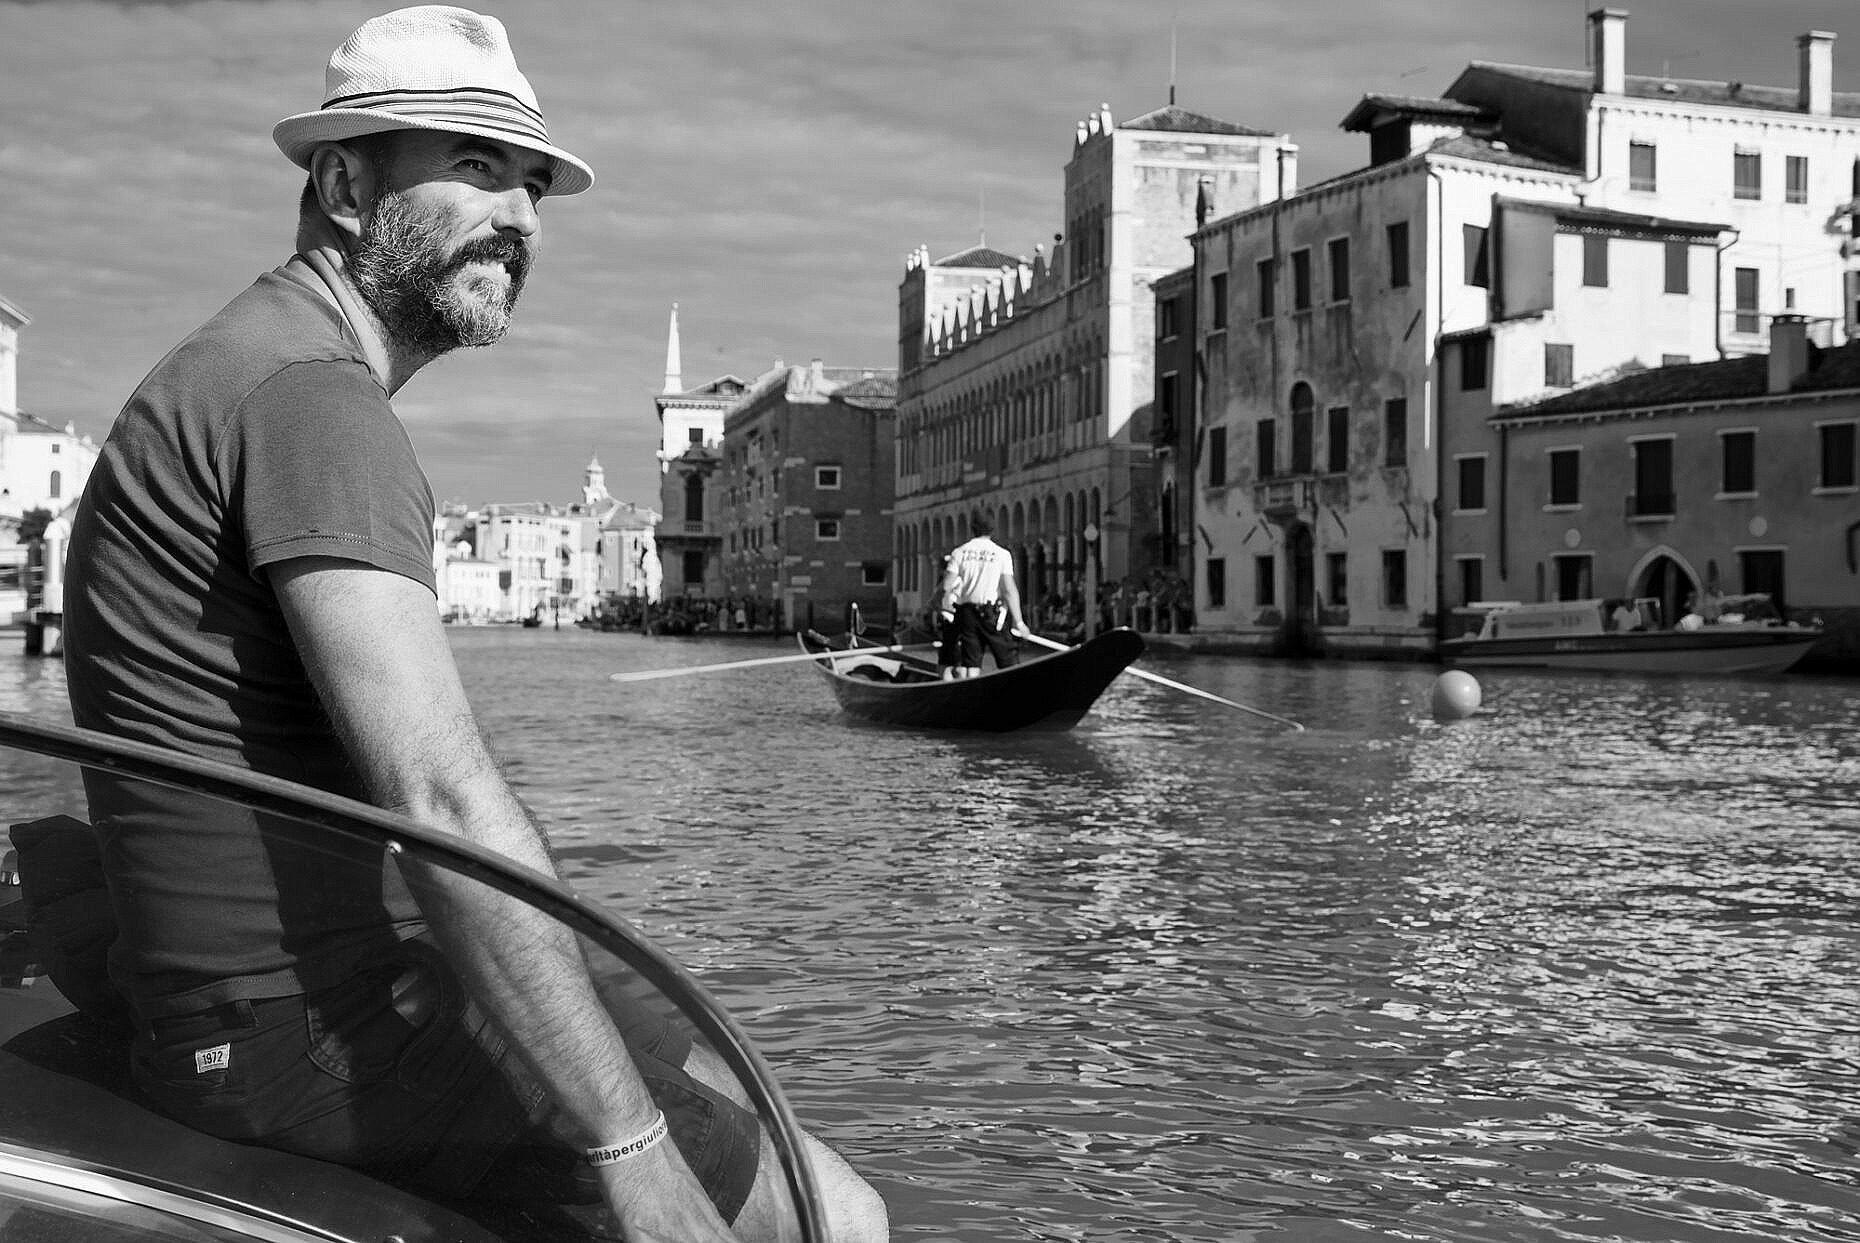 Francesco Penzo on the lookout for the Regata Storica 2018, sitting on the front of his motor boat on the Grand Canal while the local police is rowing past